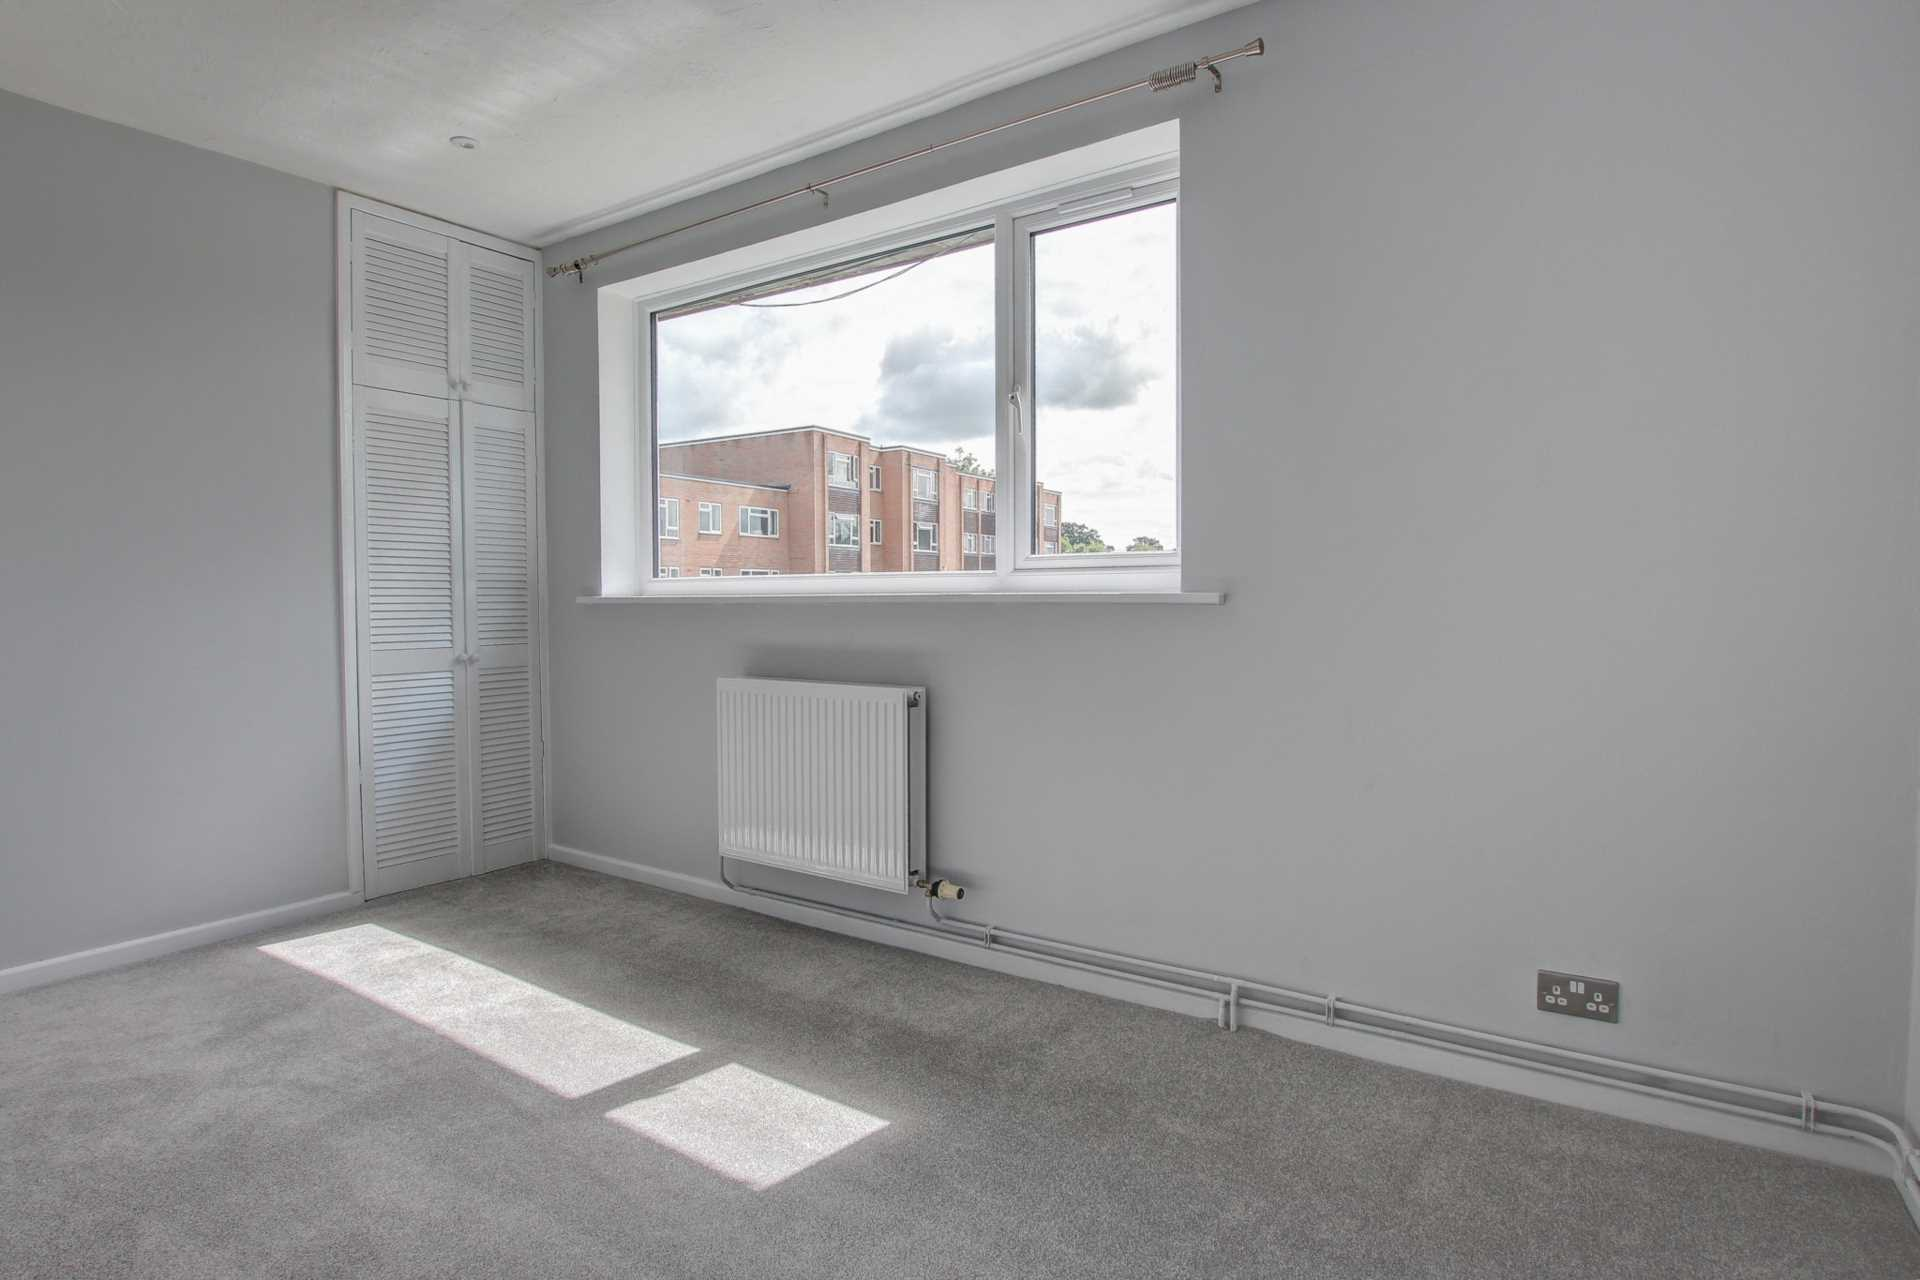 2 bed end of terrace house to rent in Fishers Close, Blandford Forum, Blandford Forum 7